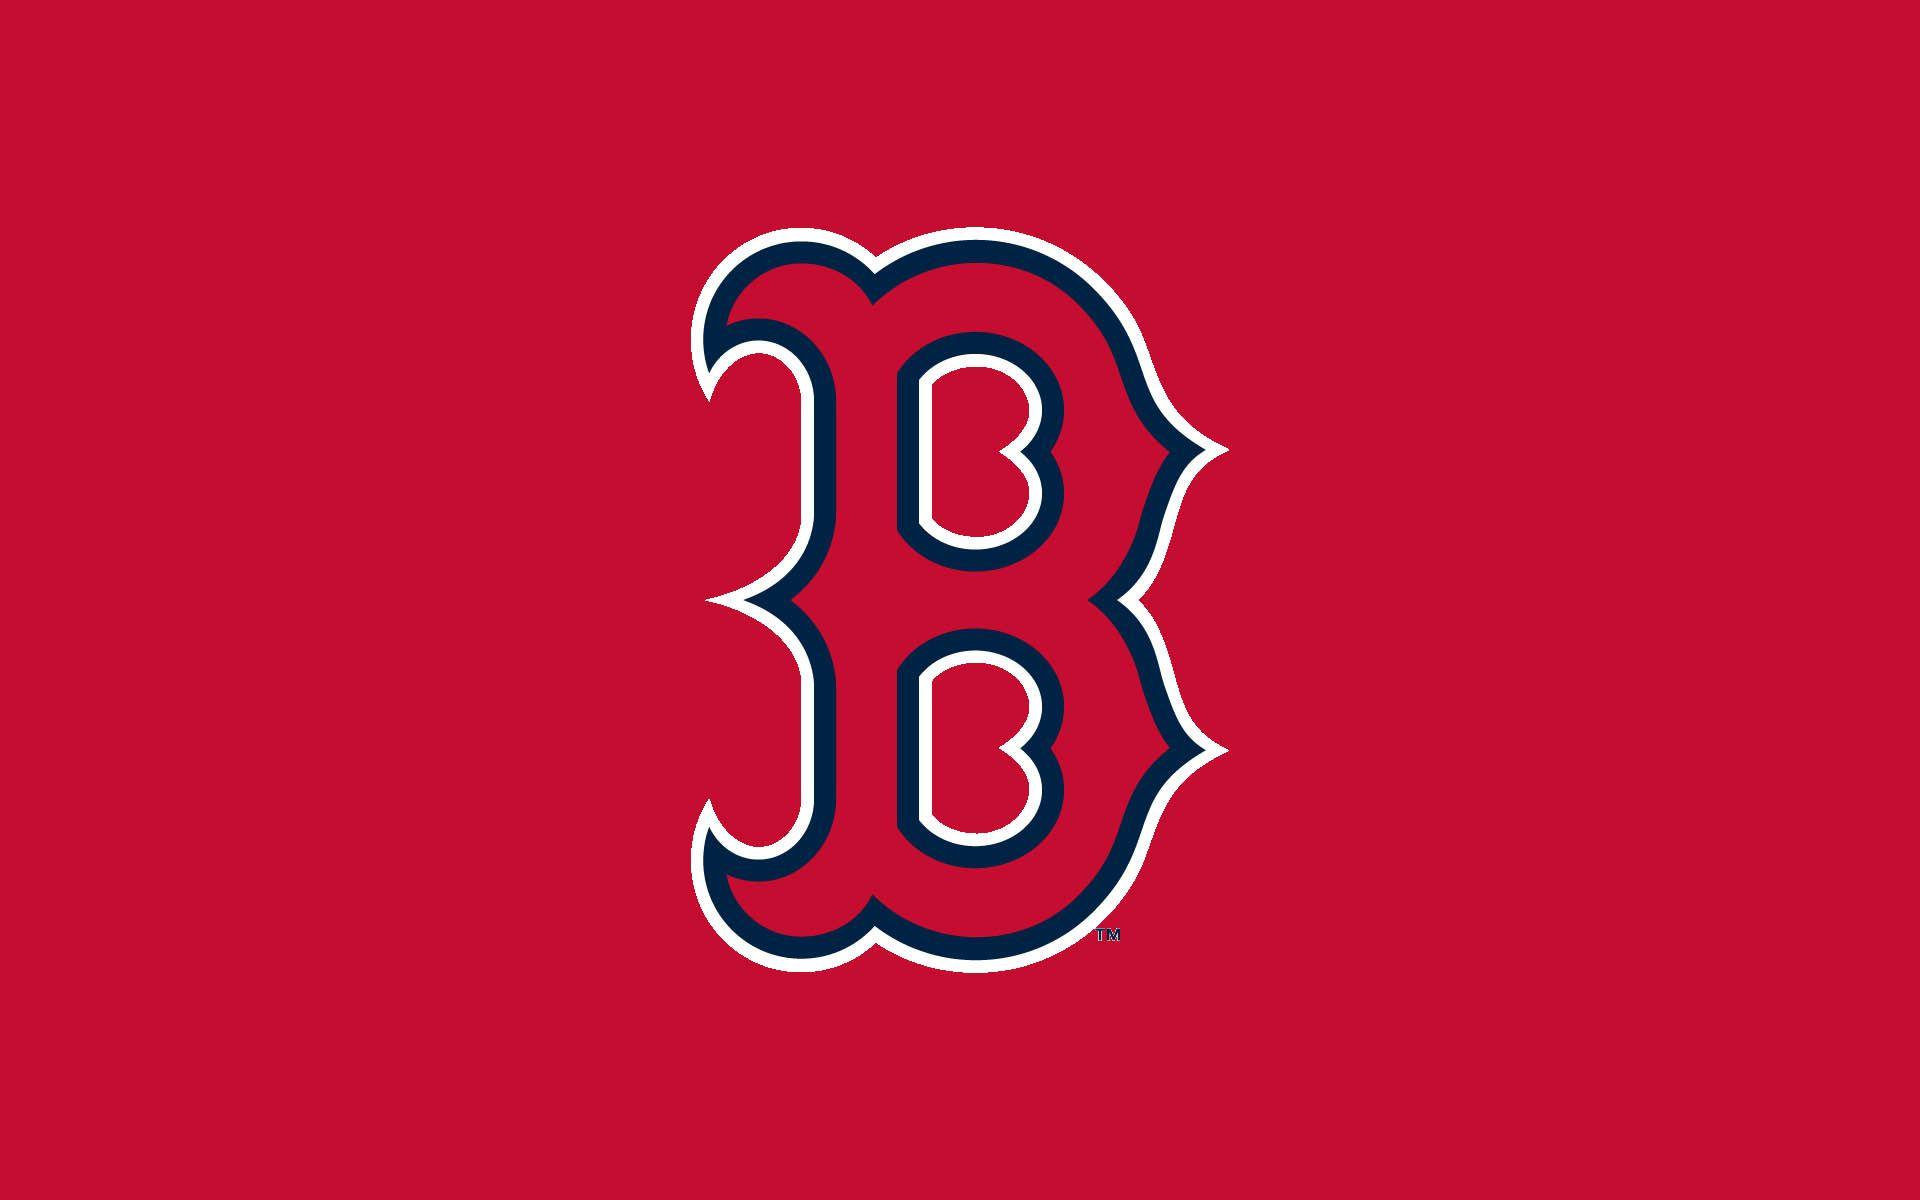 boston red sox wallpaper widescreen - photo #4